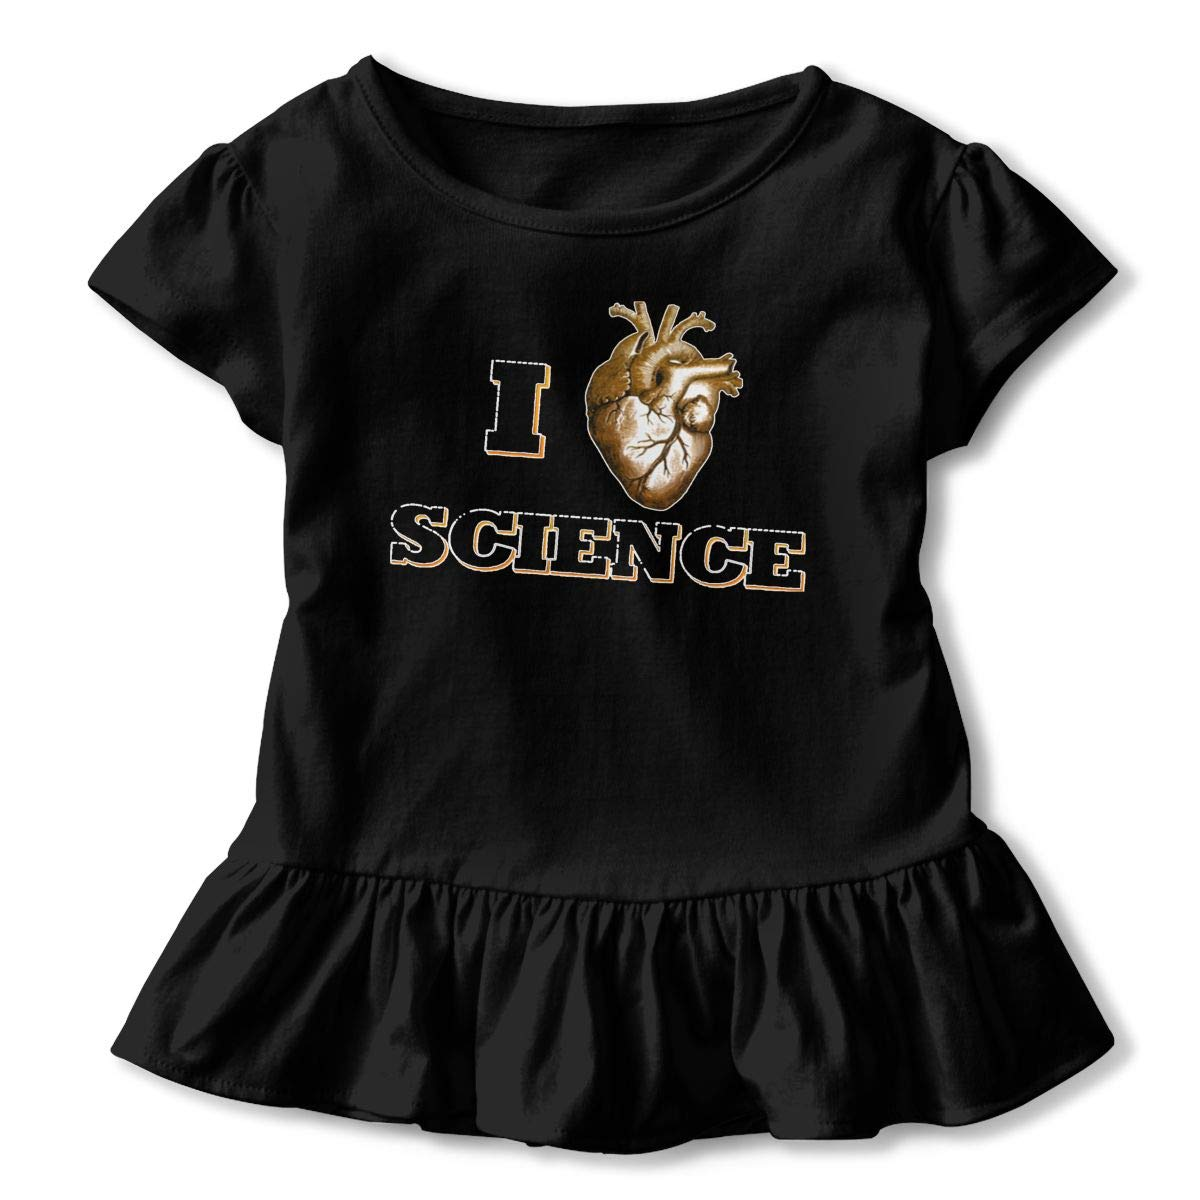 Funny I Love Science Toddler Girls T Shirt Kids Cotton Short Sleeve Ruffle Tee